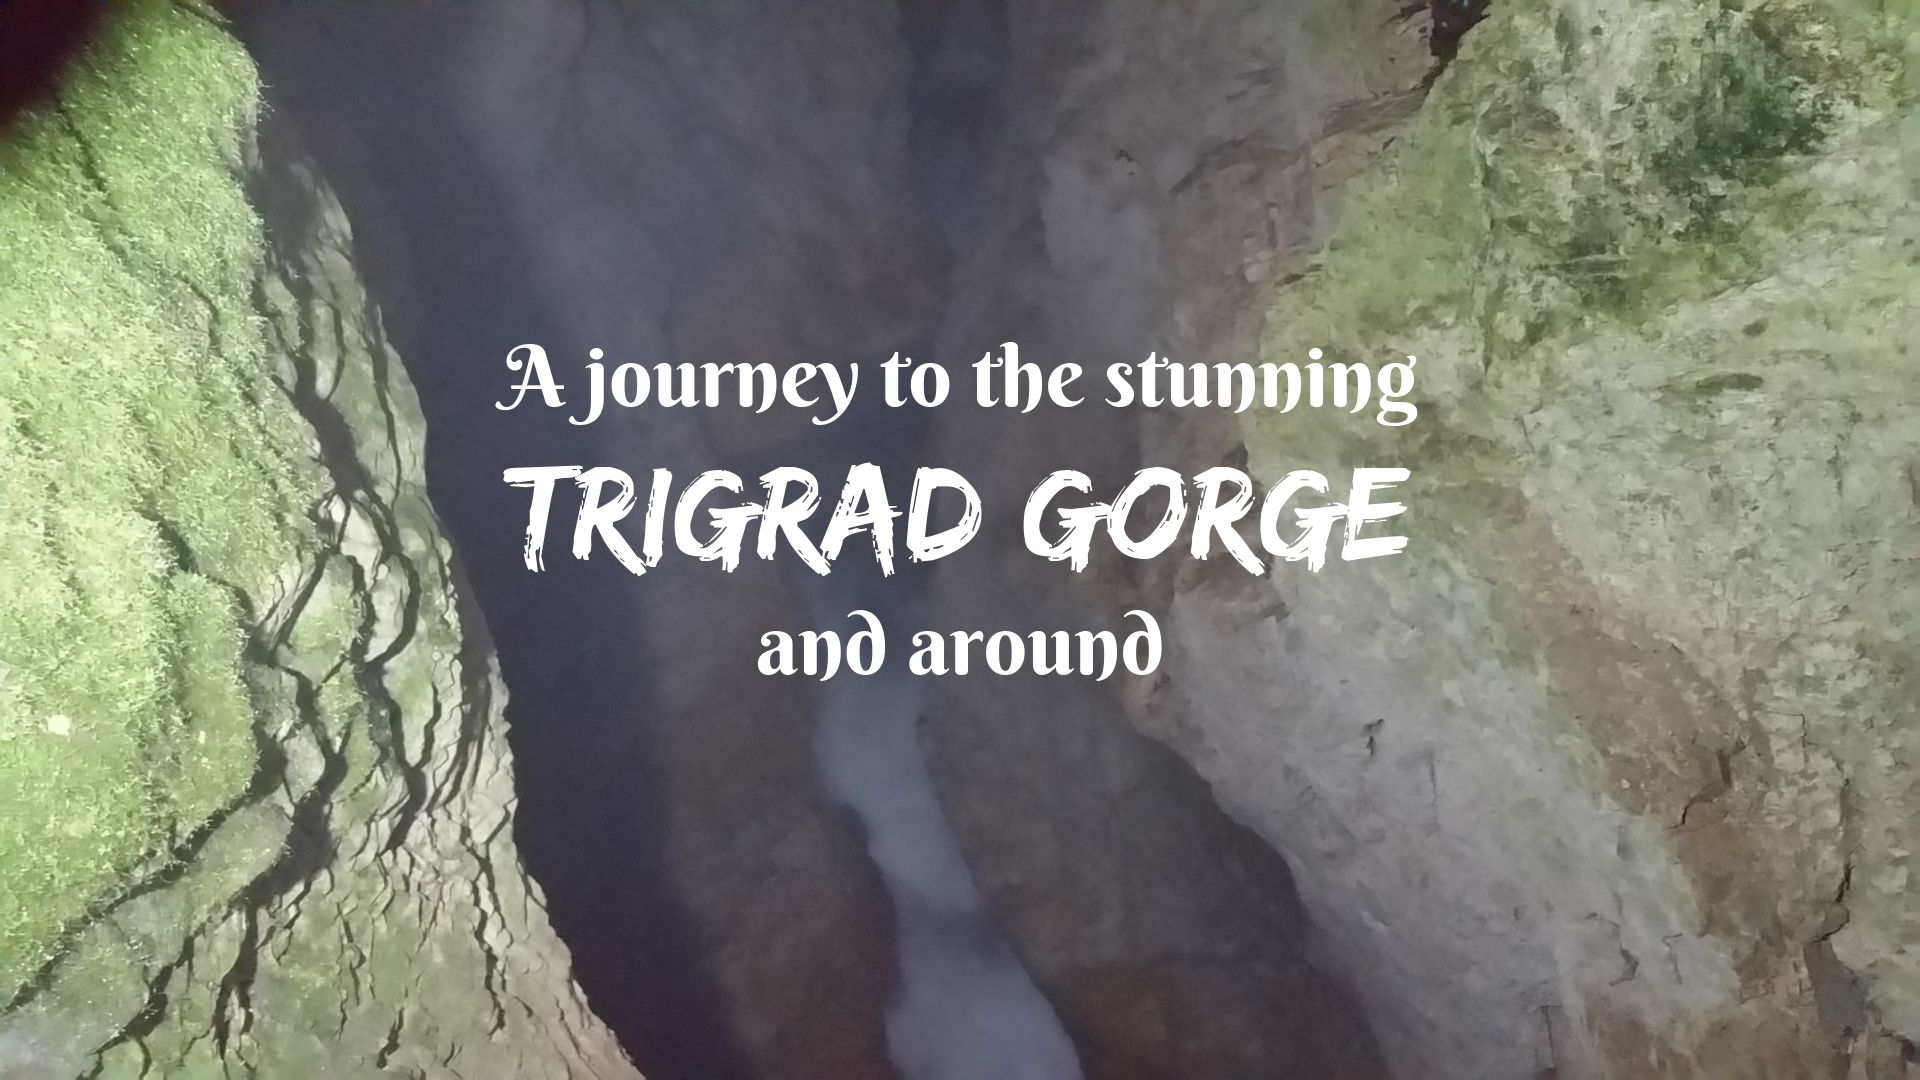 A JOURNEY TO THE STUNNING TRIGRAD GORGE AND AROUND